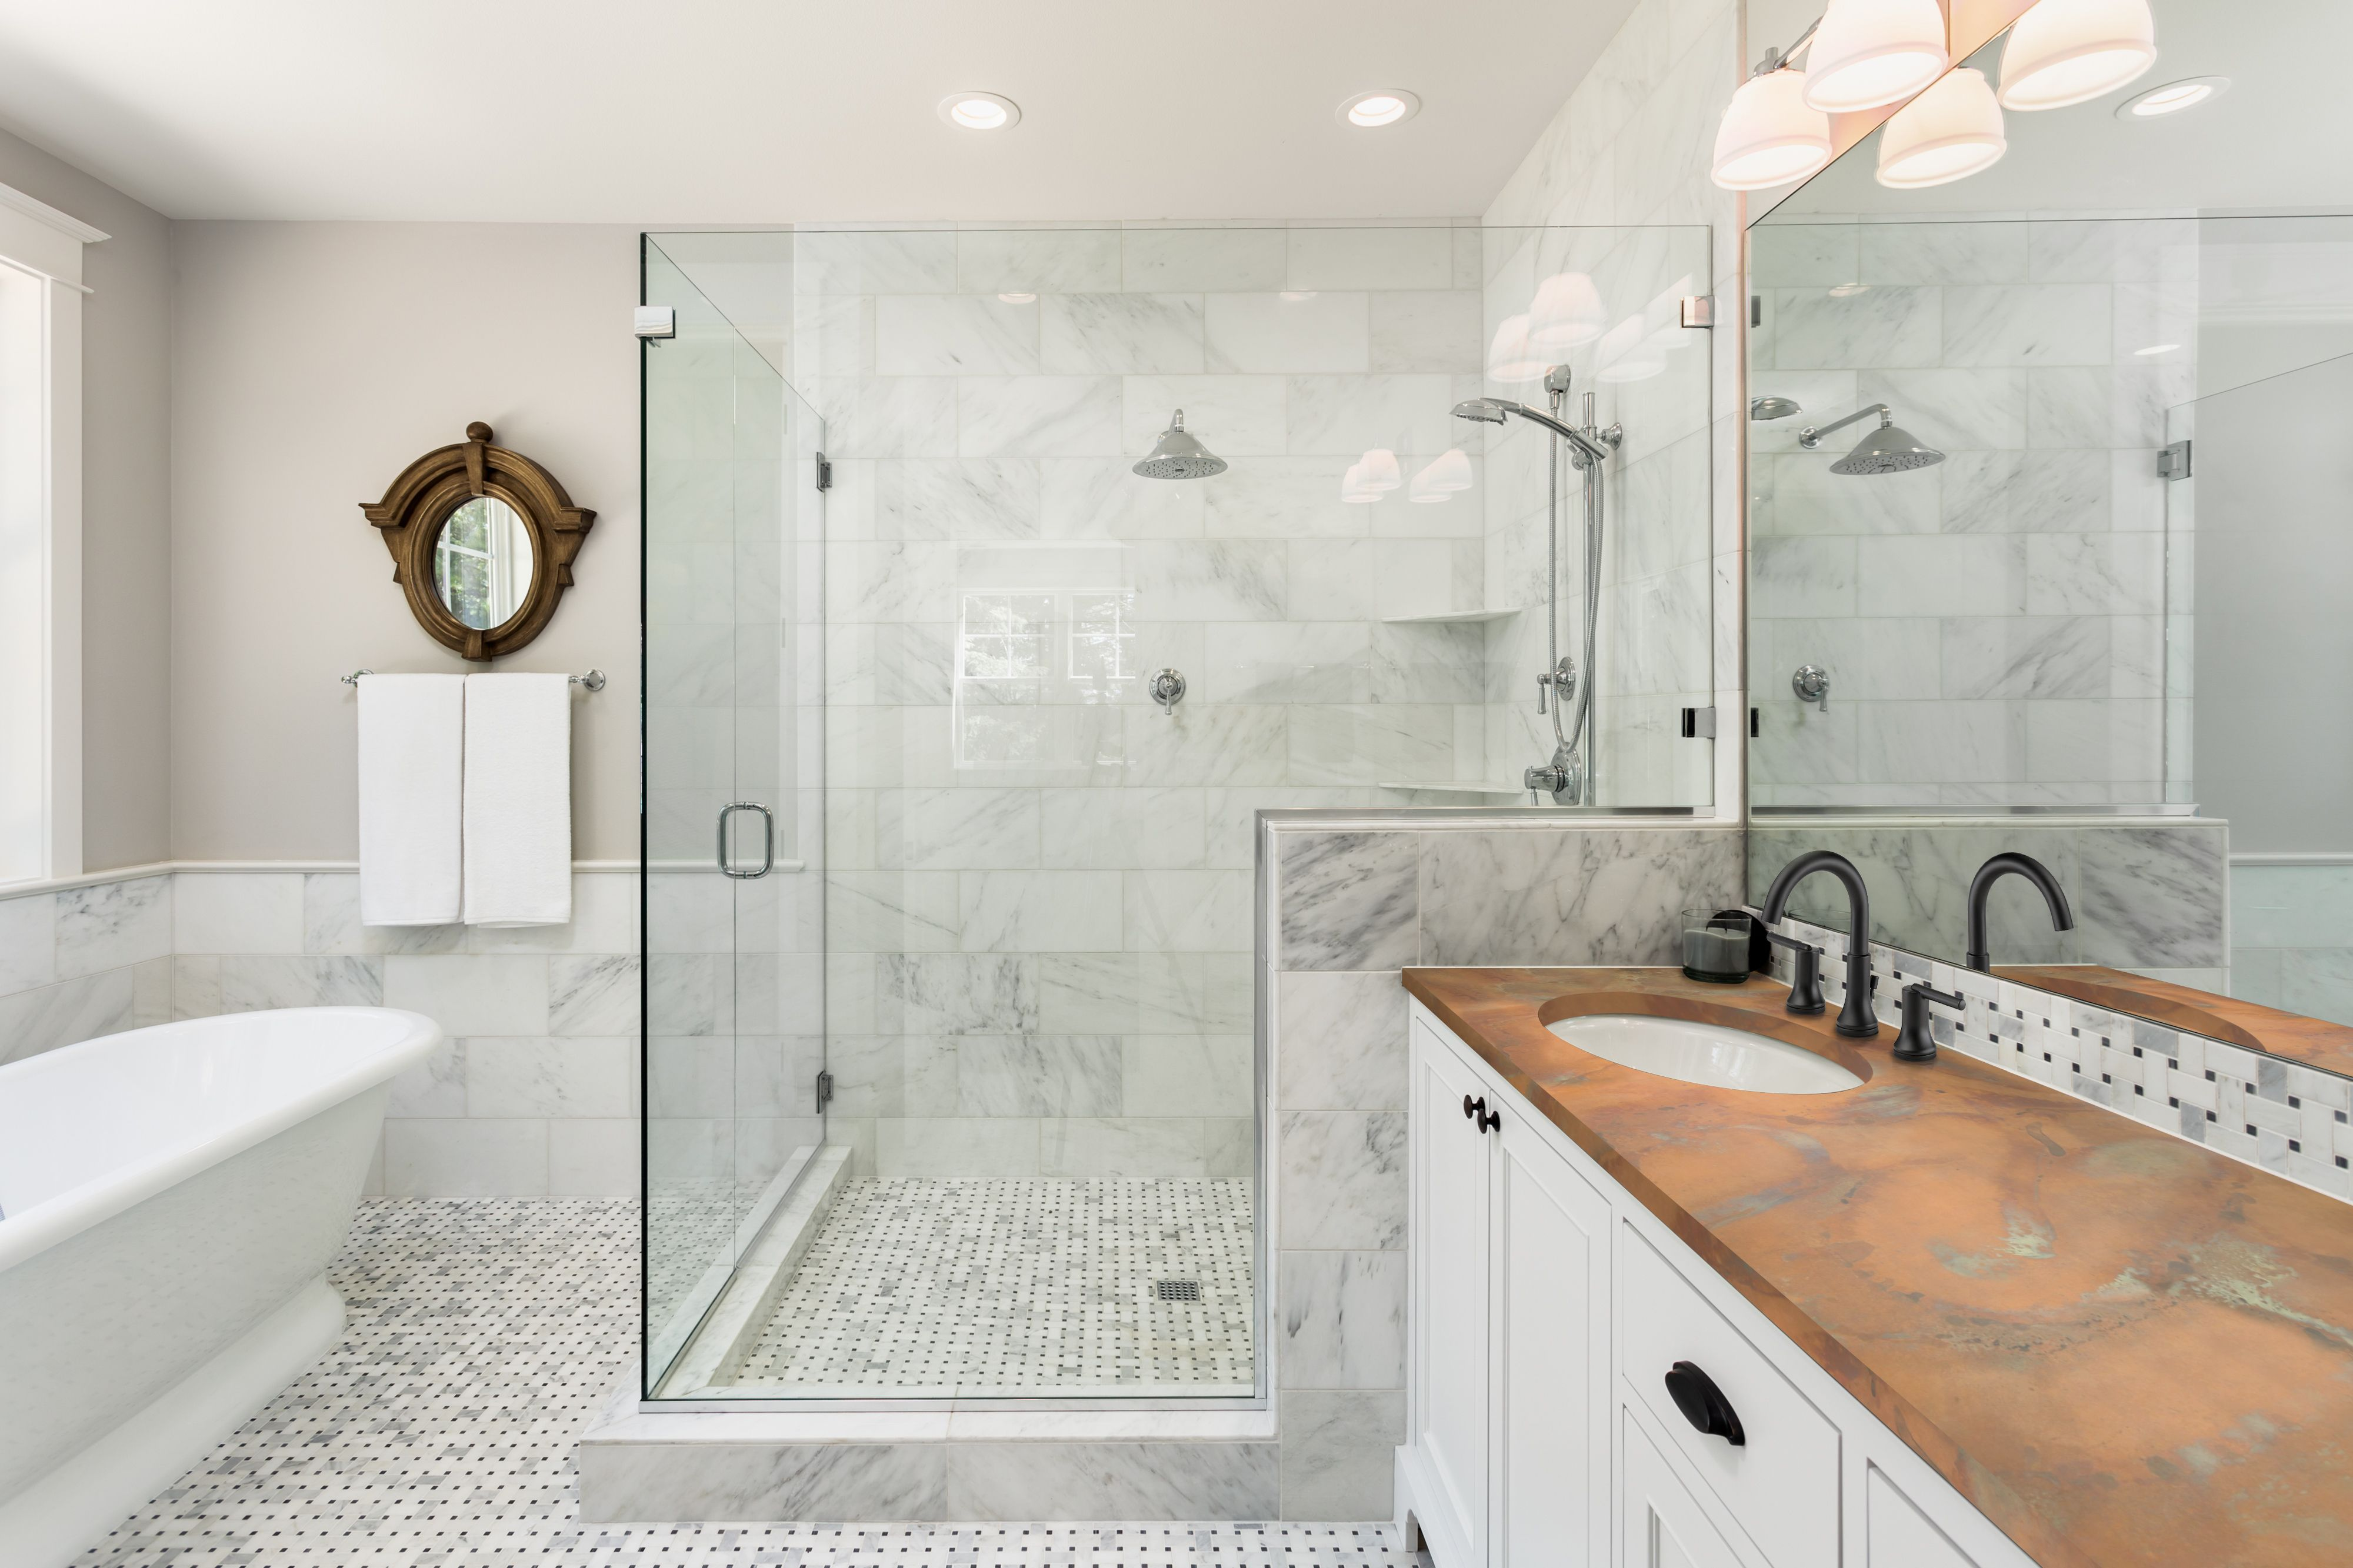 Home (With images) | Bathrooms remodel, Bathroom trends, Bathroom remodel  cost